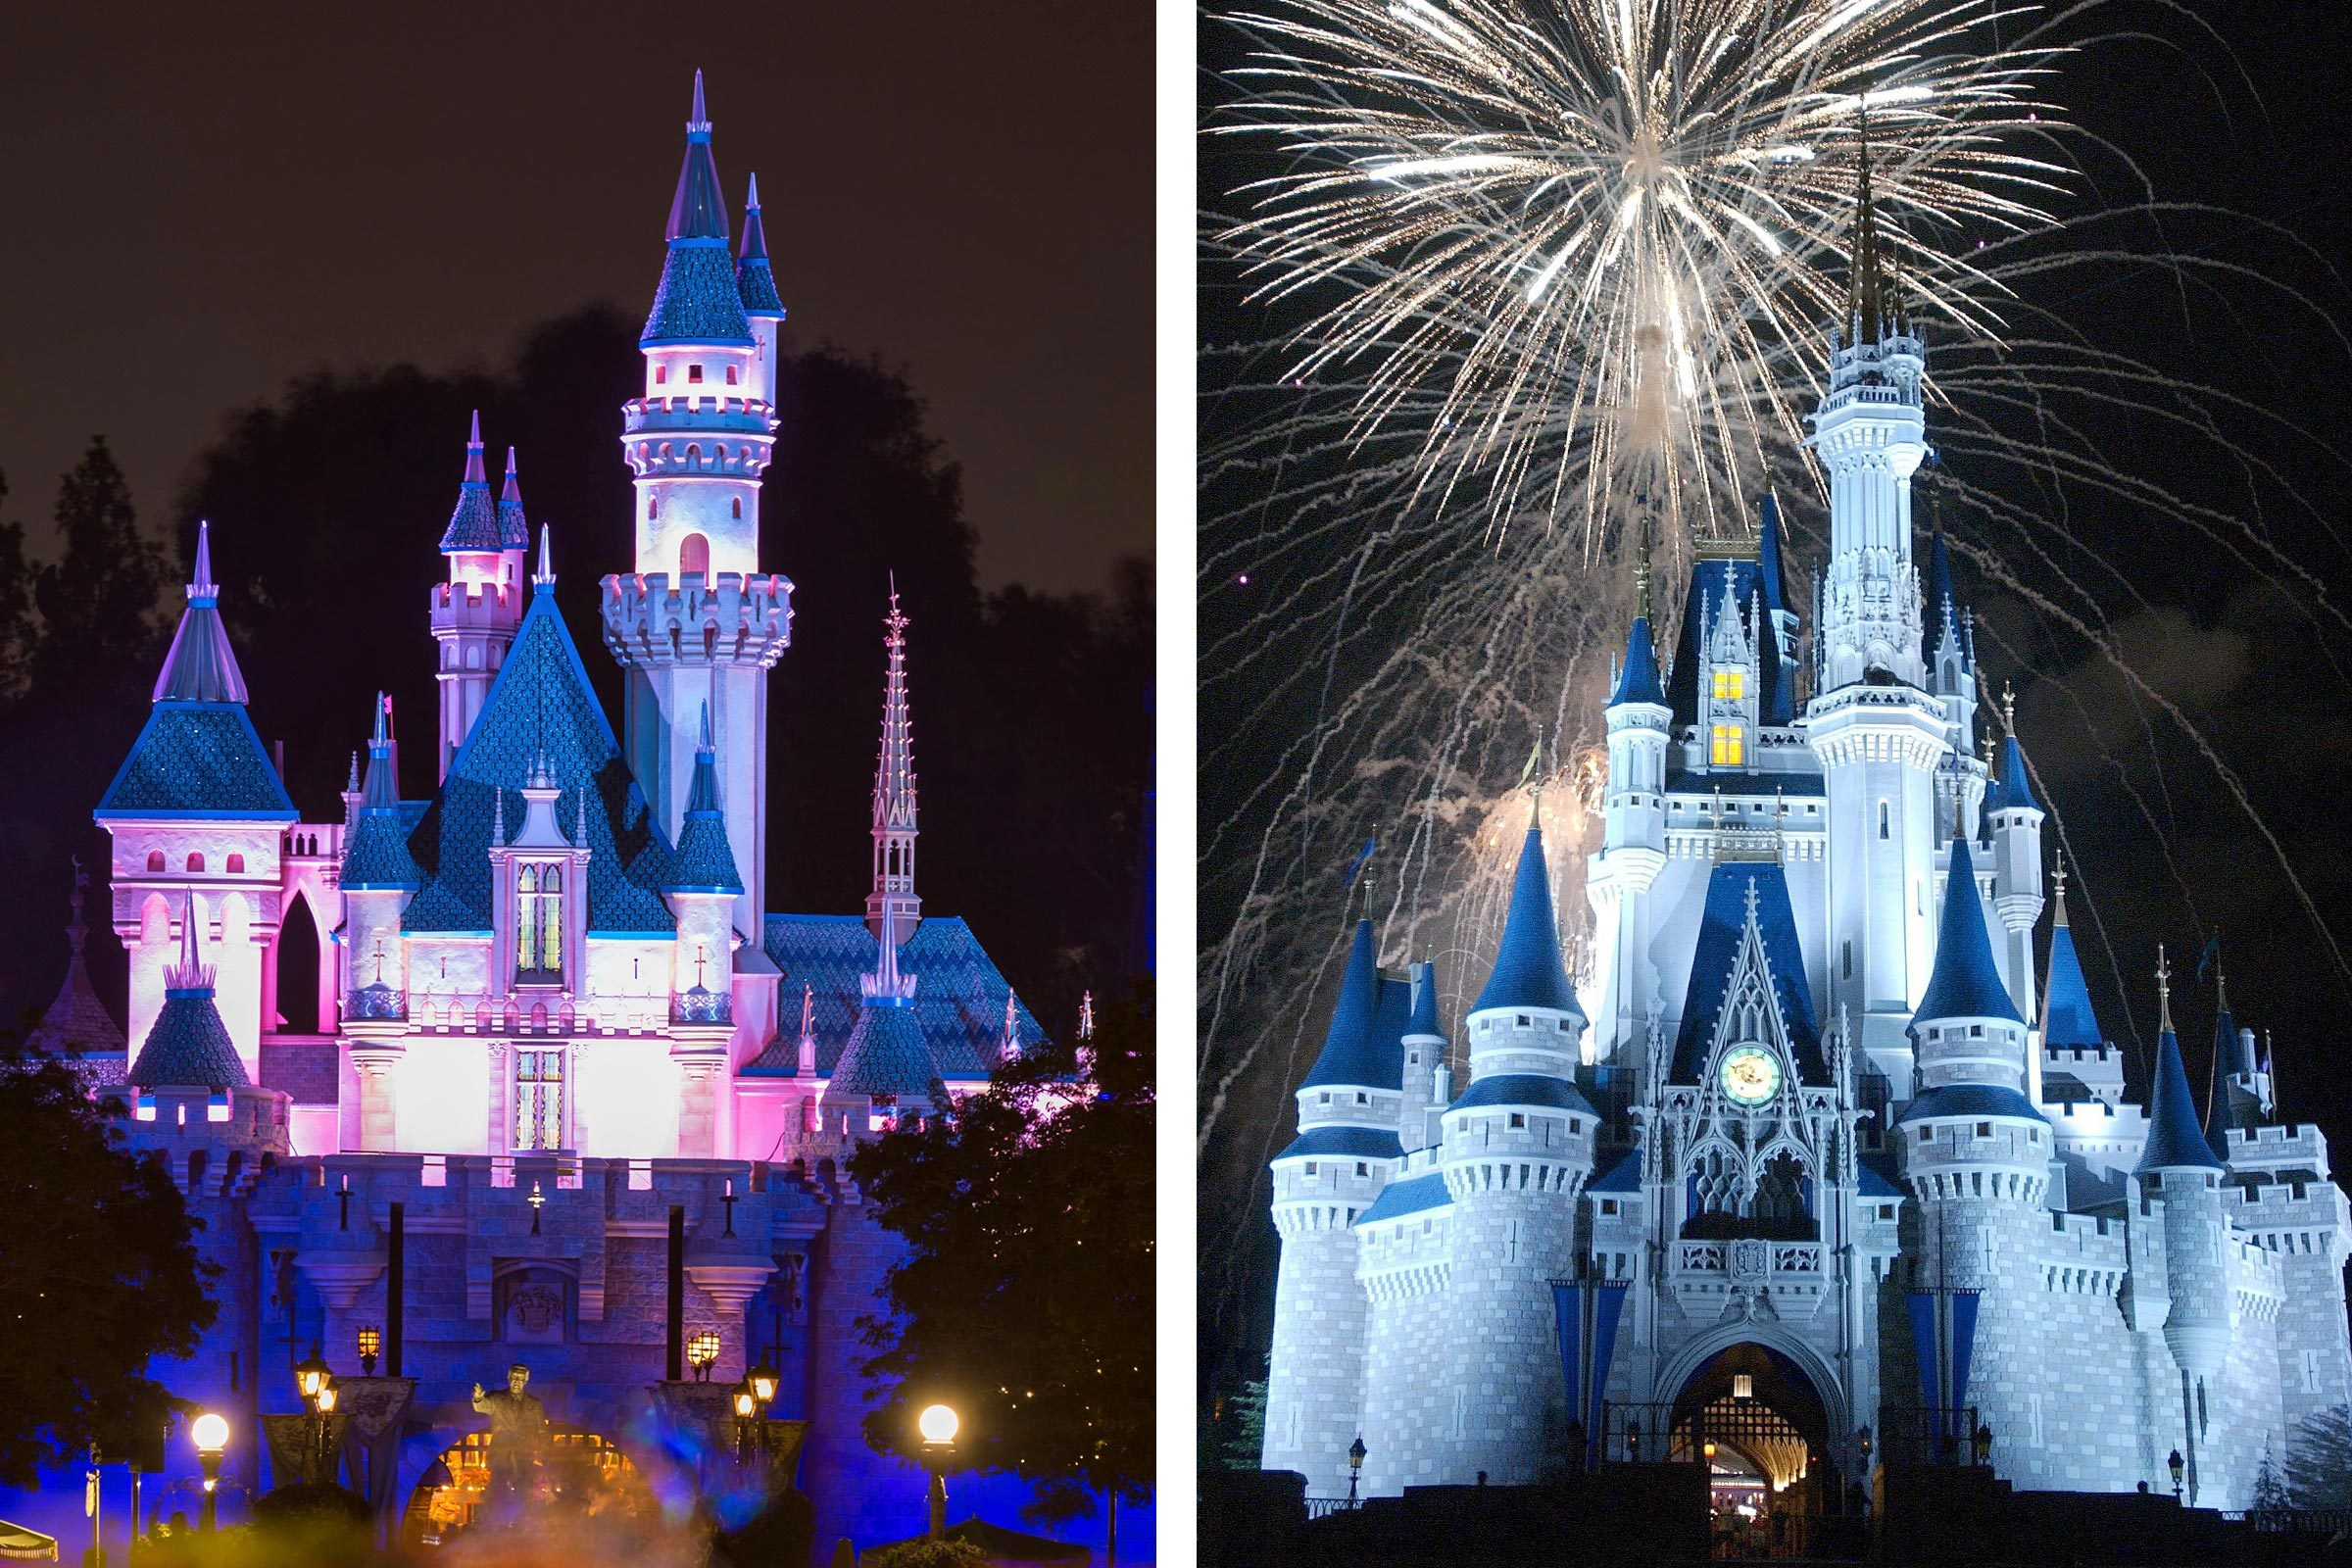 Disneyland vs Disney World: Which is Cheaper?